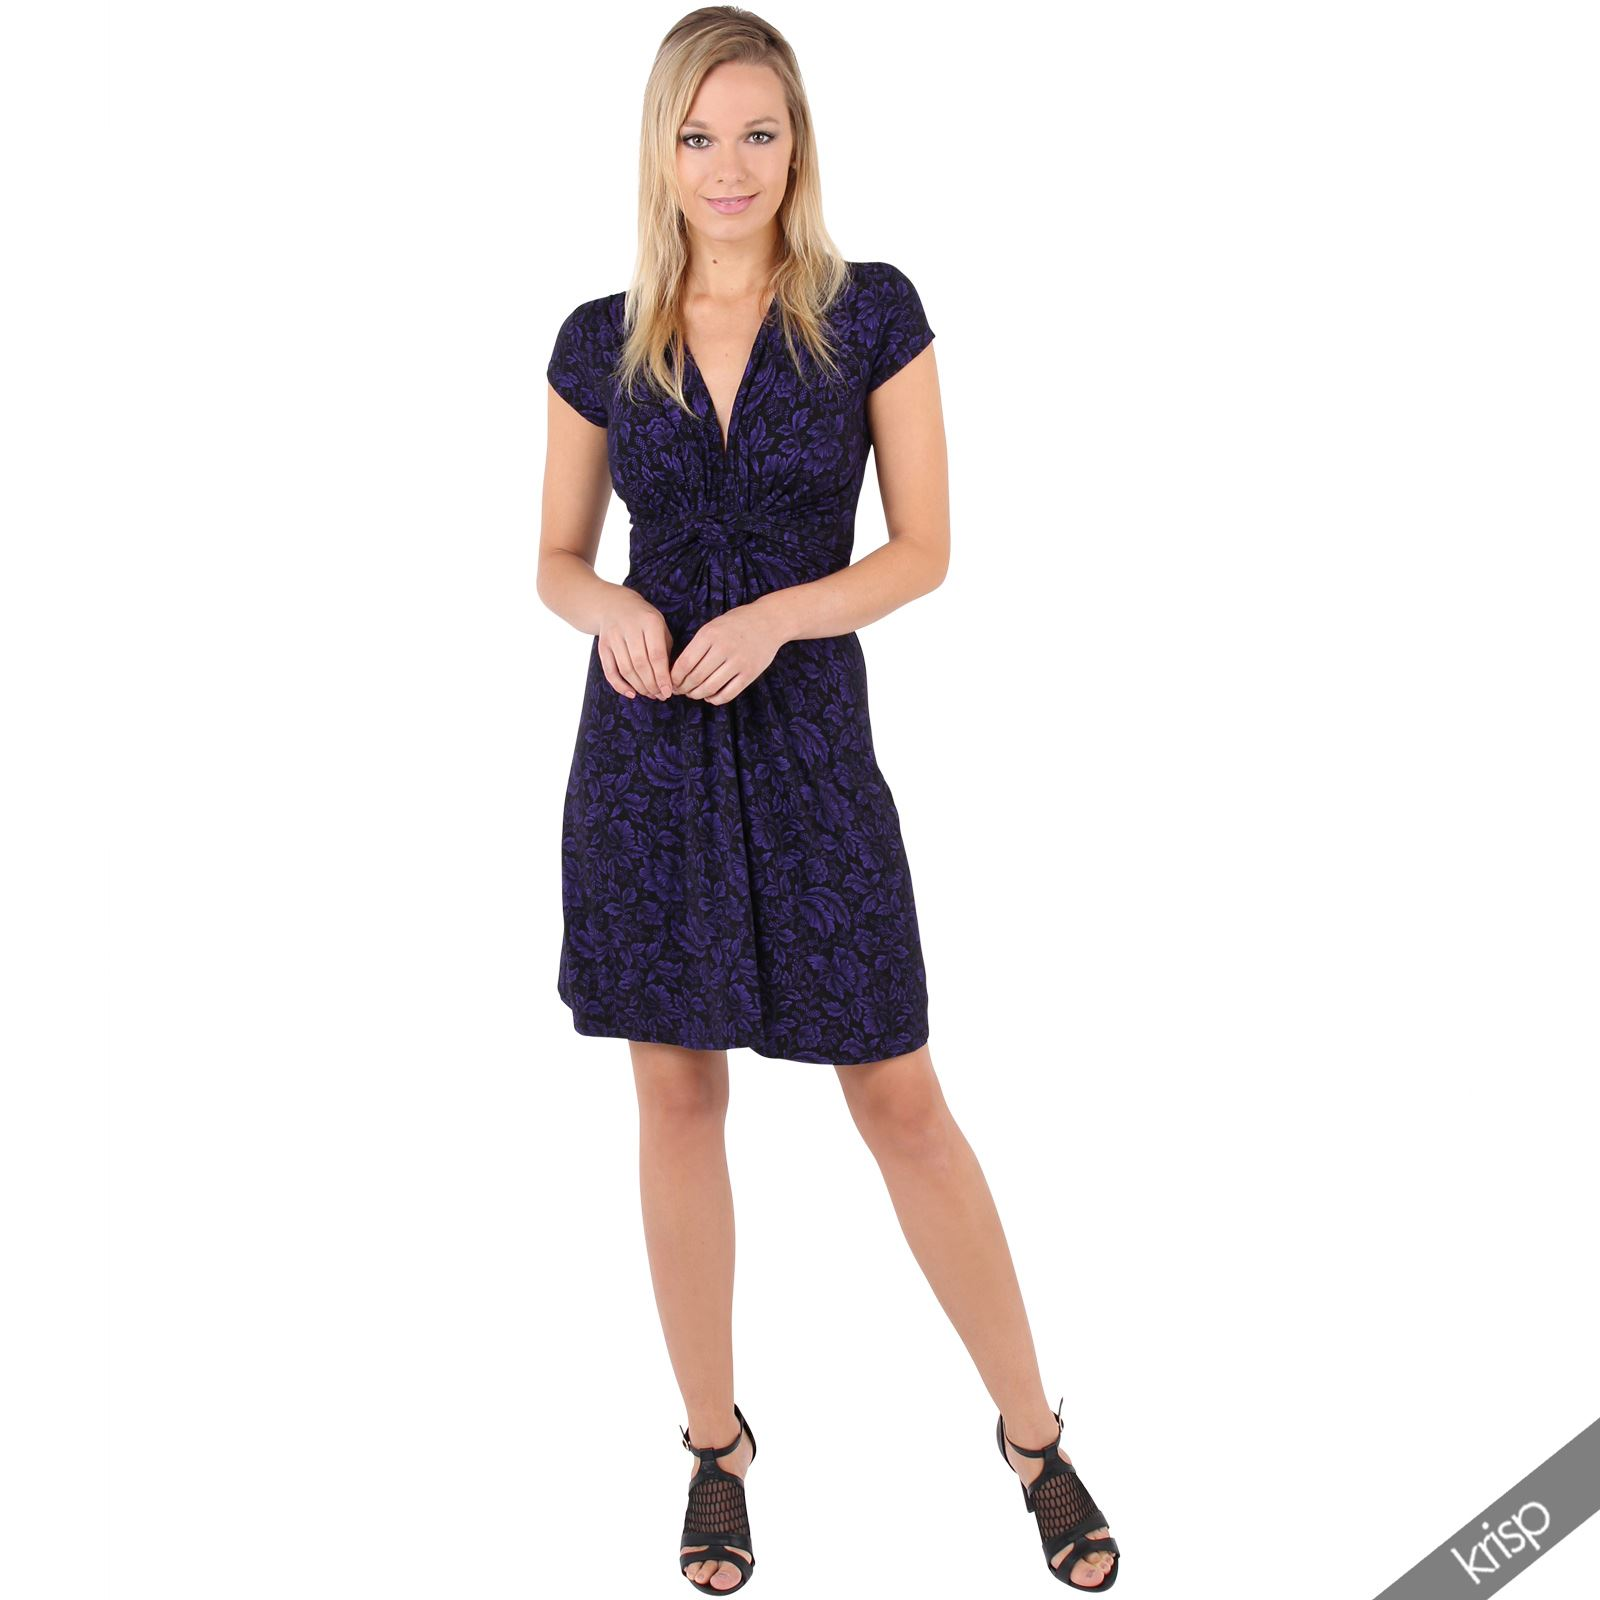 Womens-Ladies-V-Neck-Mini-Midi-Dress-Floral-Print-Knot-Short-Skirt-Party-Casual thumbnail 15